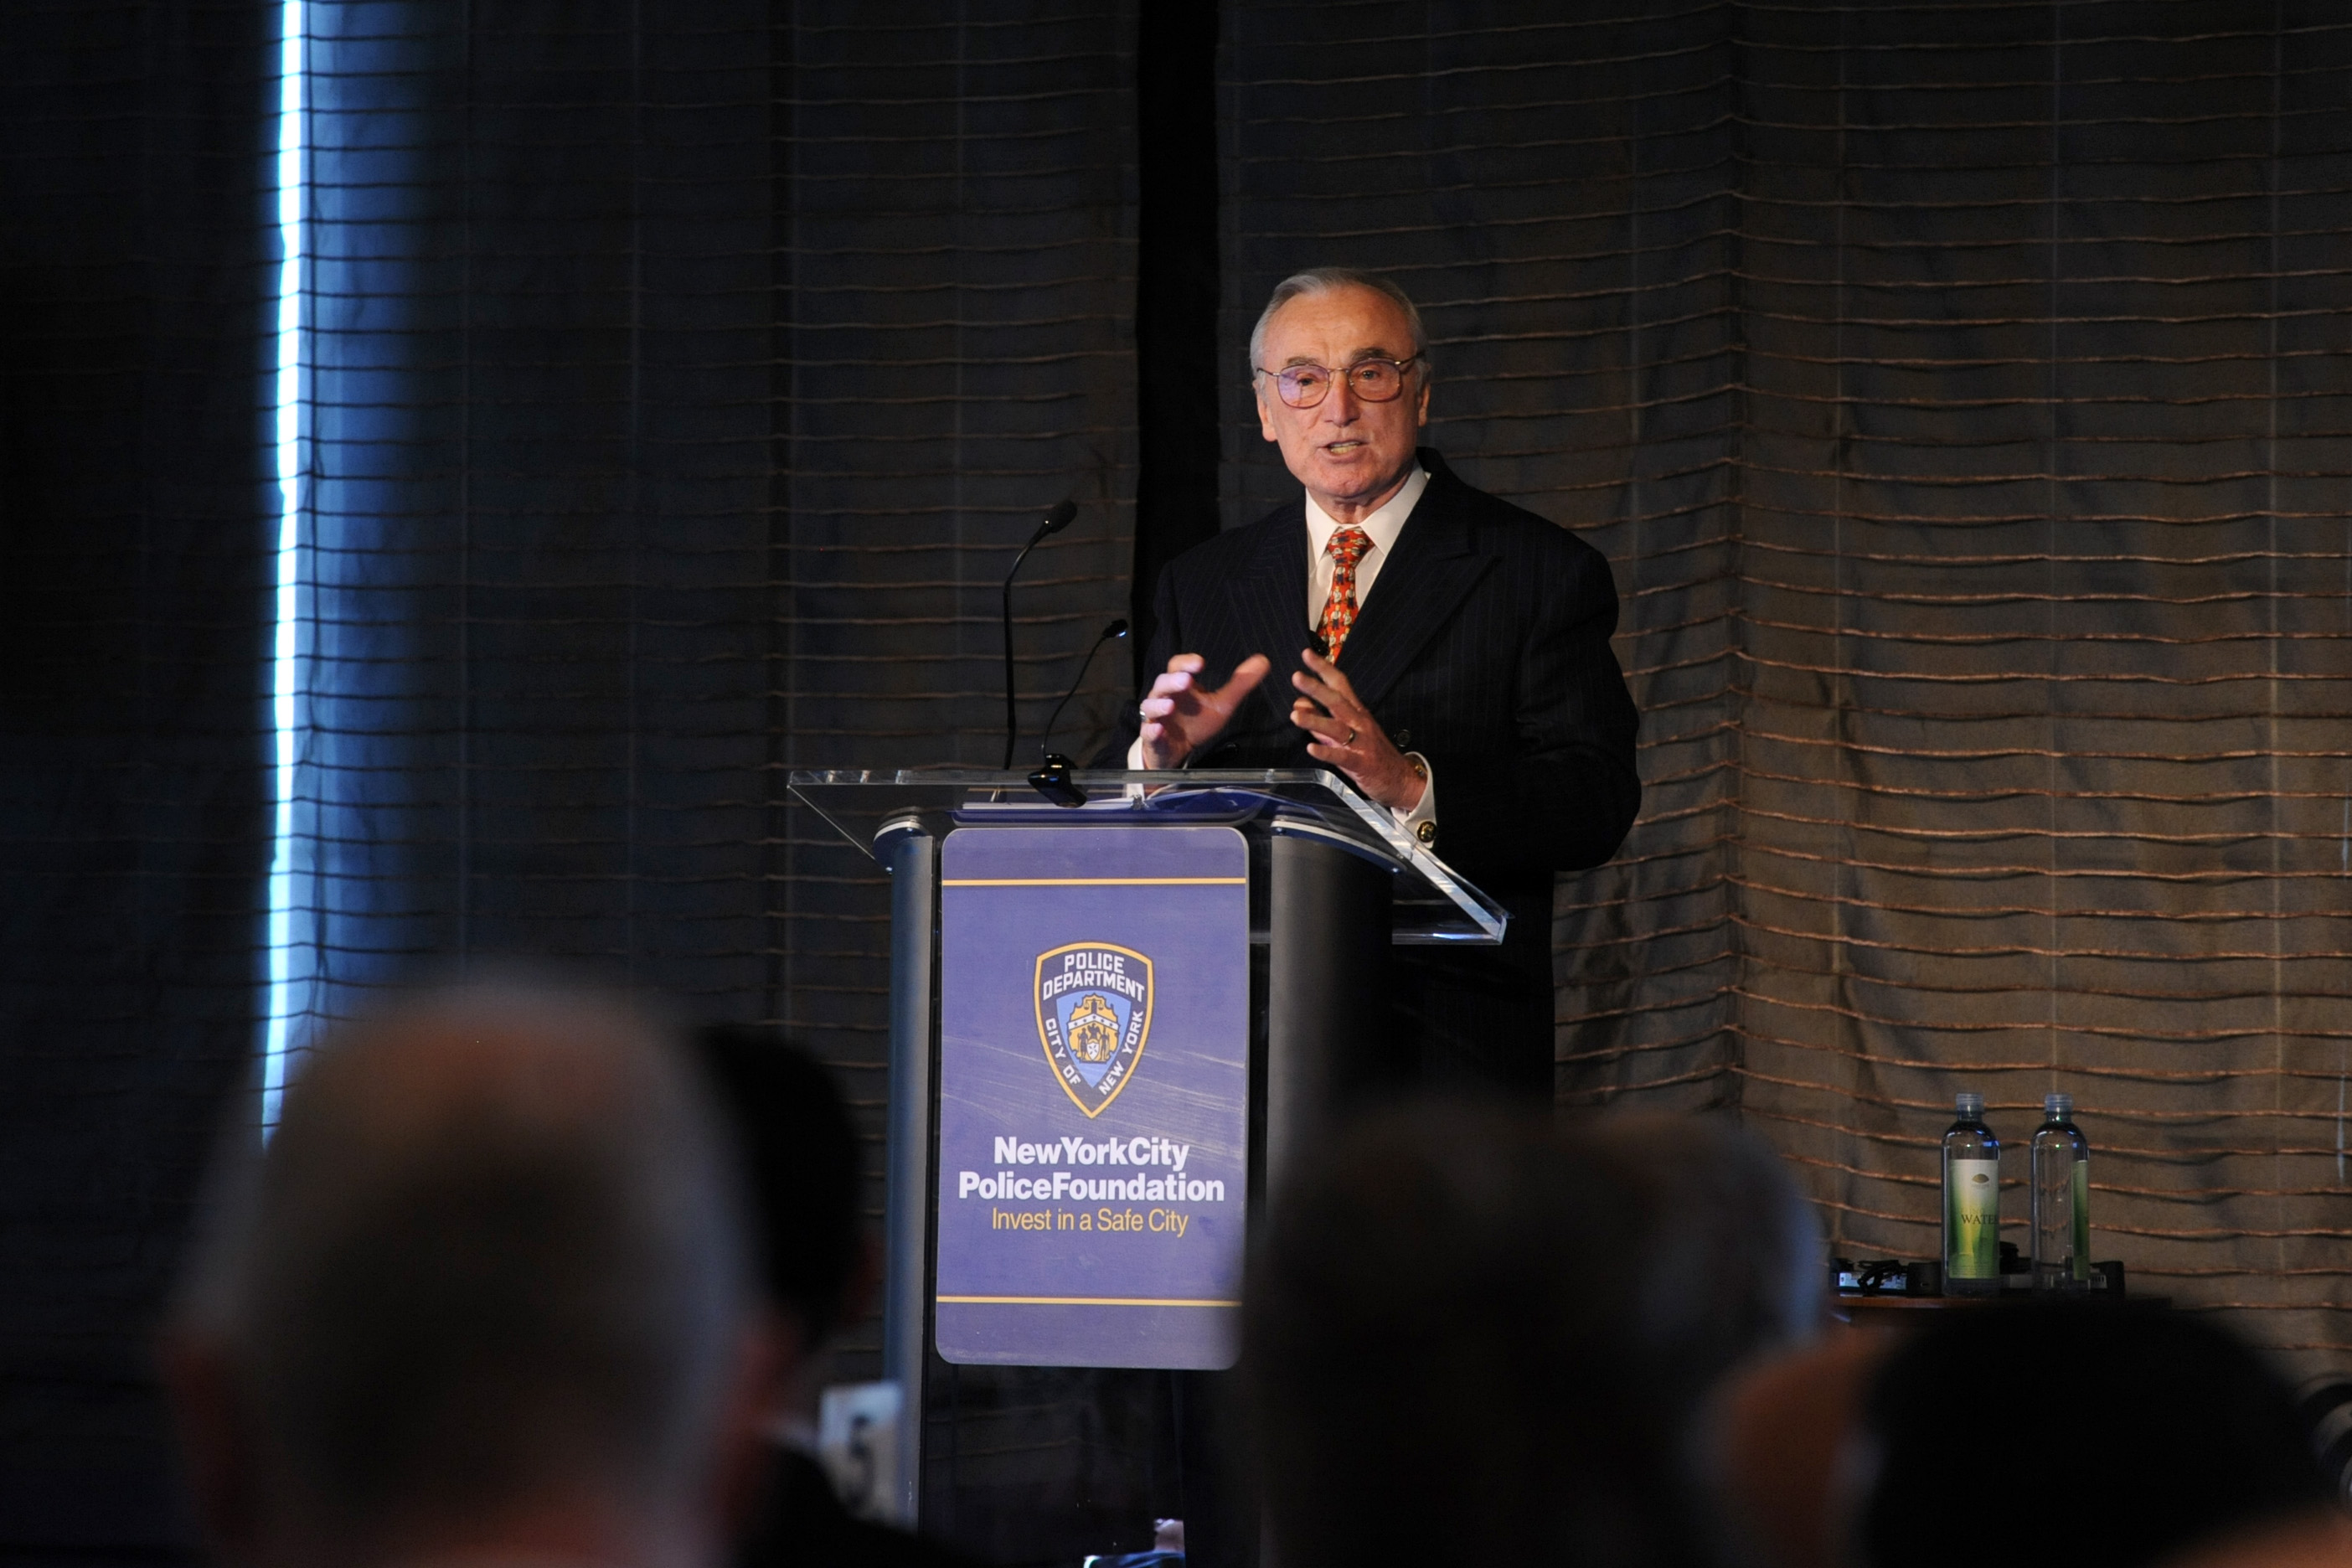 NYPD Top Cop Resigns Unexpectedly Soon, James O'Neil Takes Over